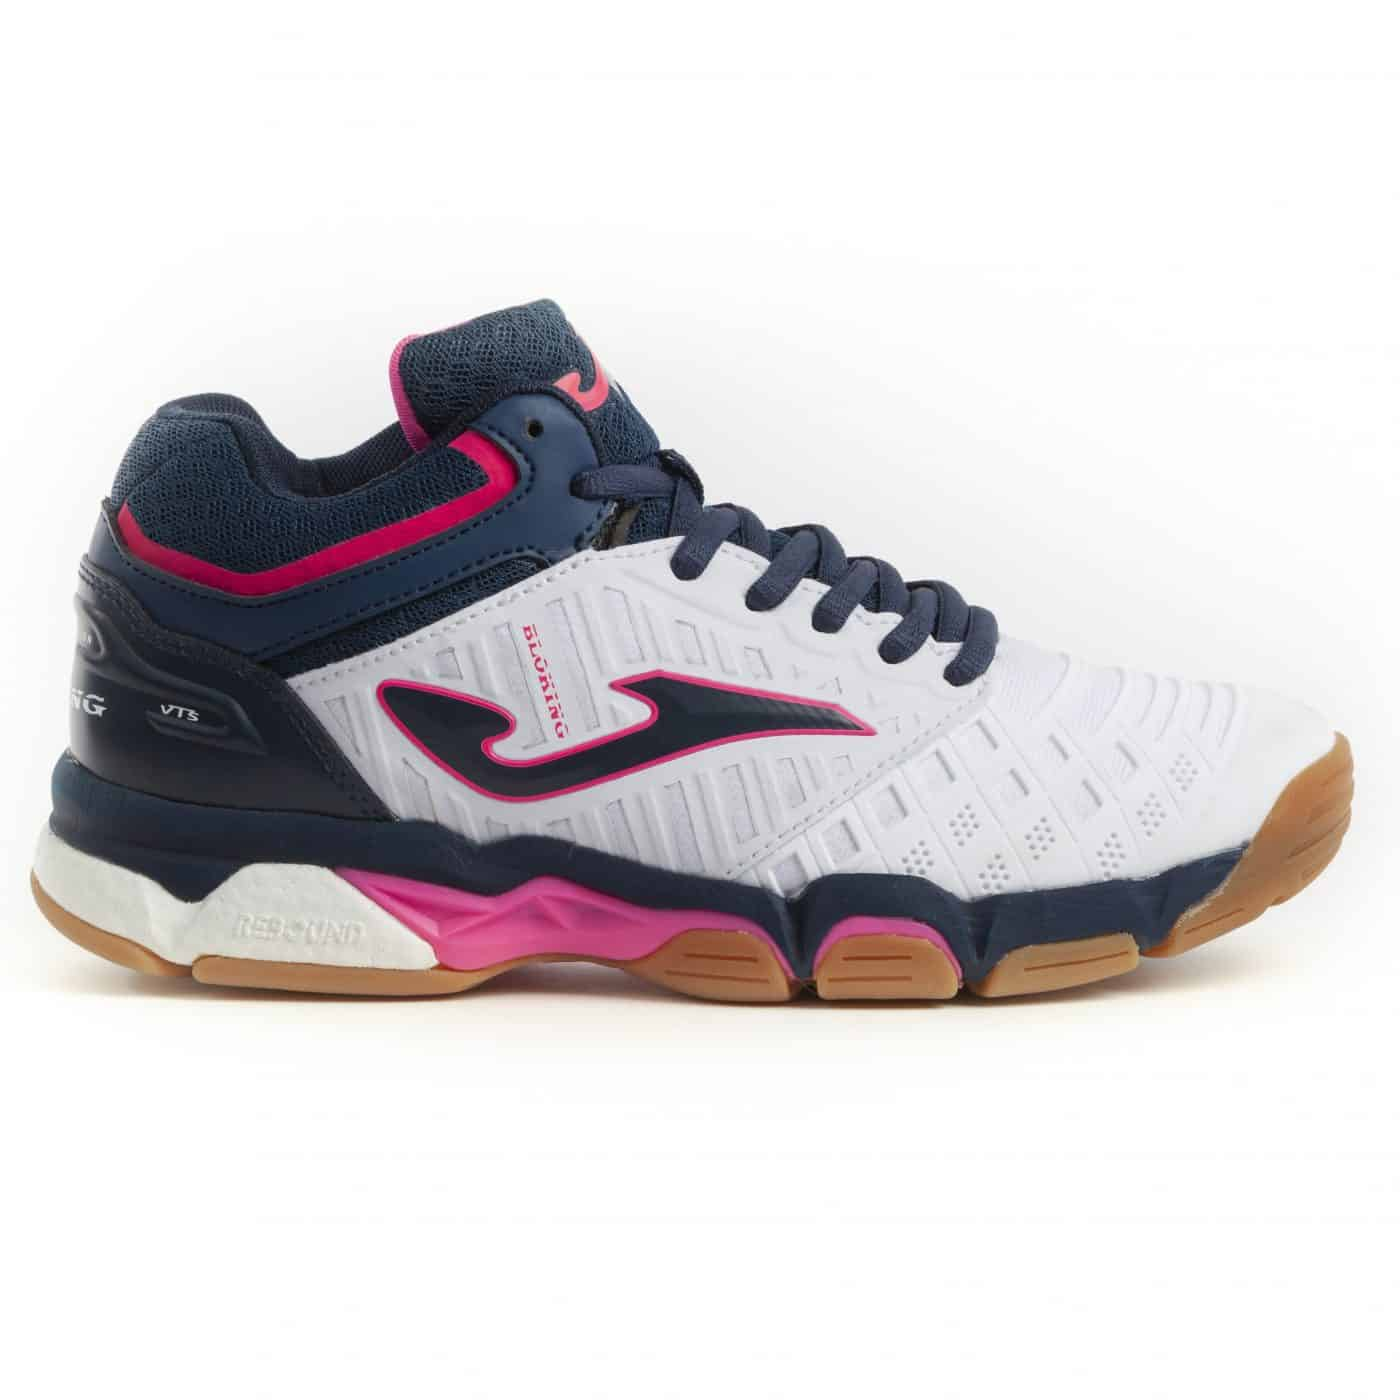 joma-v-blok-chaussure-volley-volleypack-2019-5